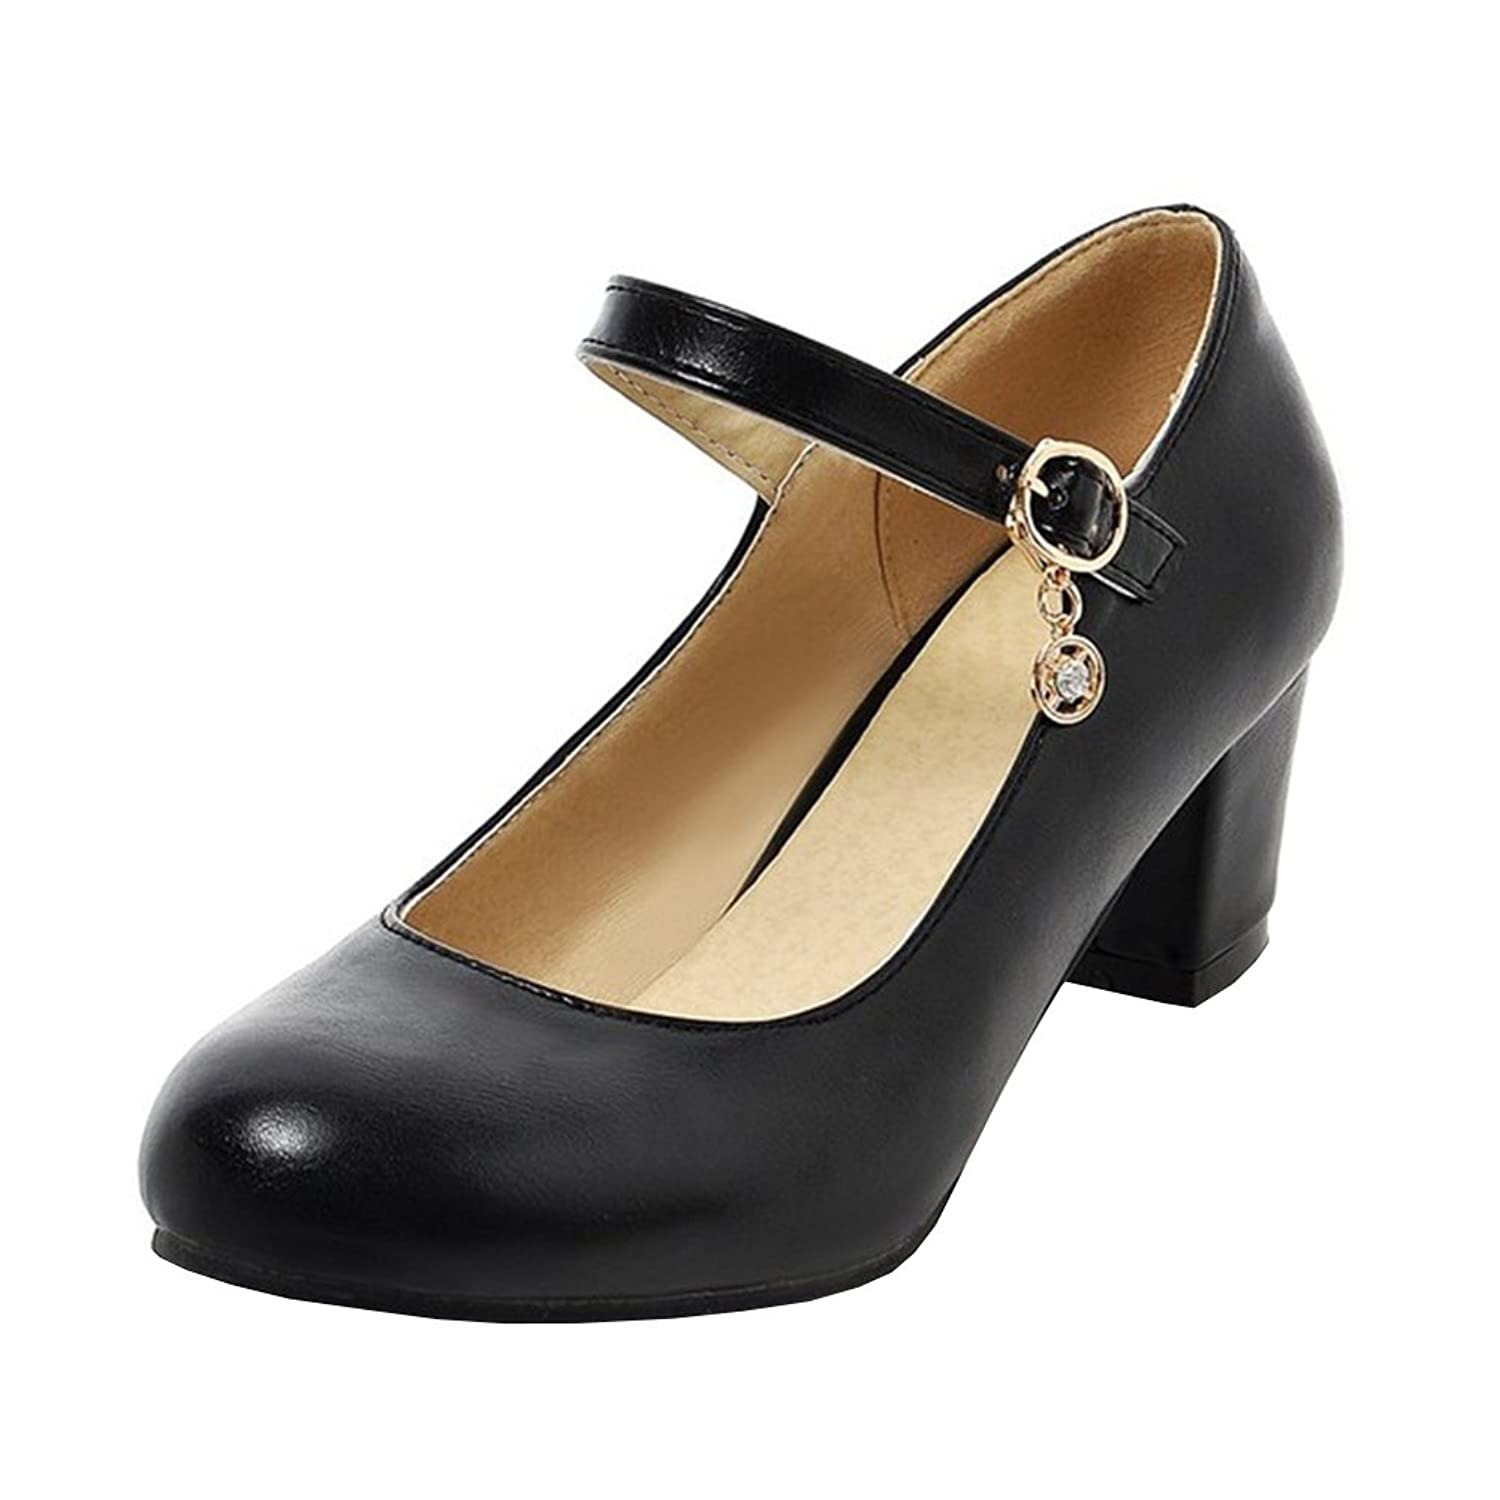 Agodor Womens Mid Chunky Heel Mary Janes Ankle Strap Pumps Closed Toe Cute Dress Party Shoes